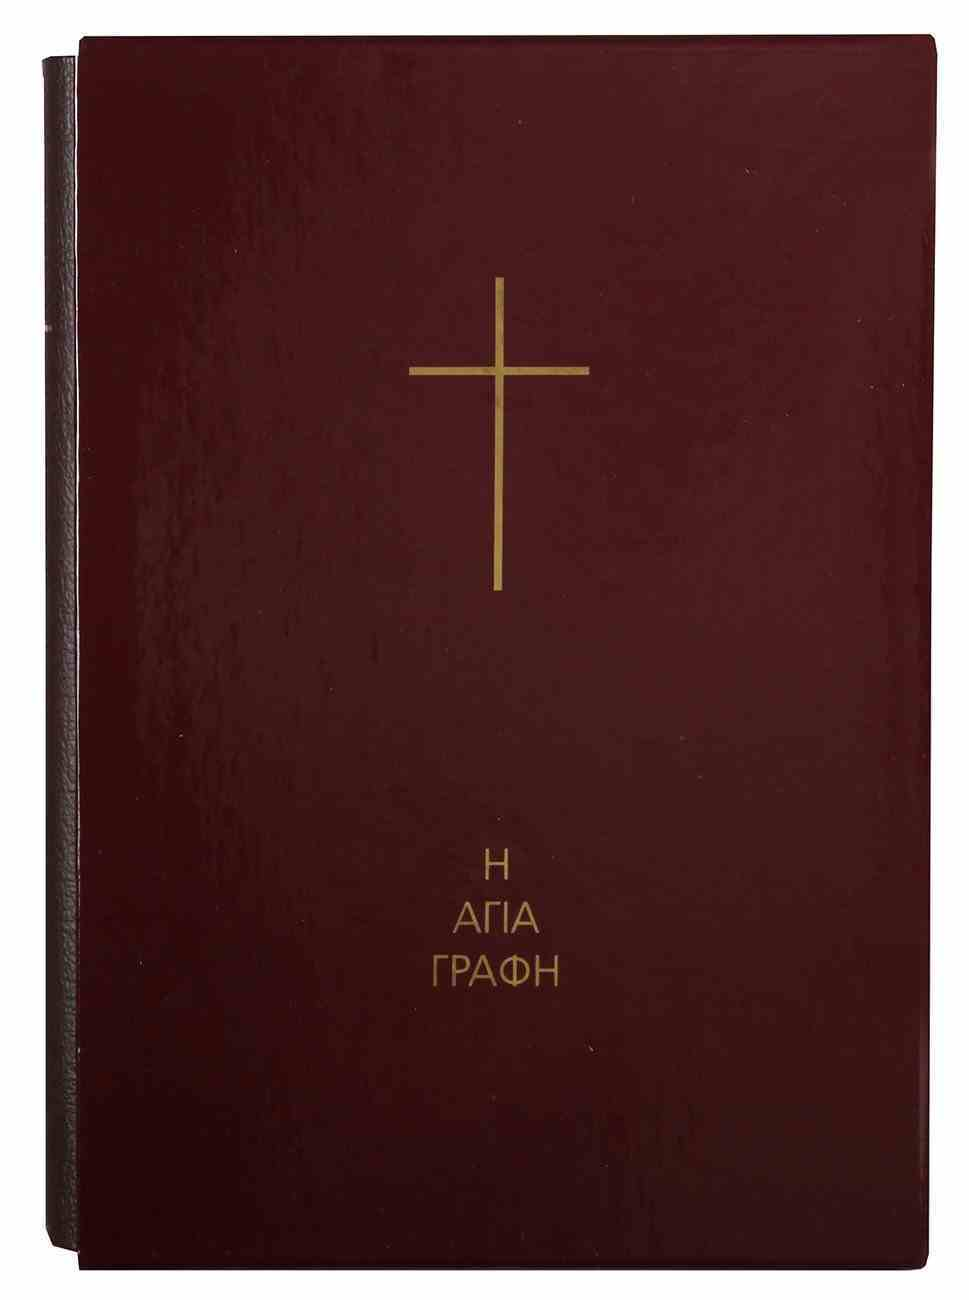 Tgv the Holy Bible Without Deuteroncanonicals Burgundy With Slipcase Genuine Leather